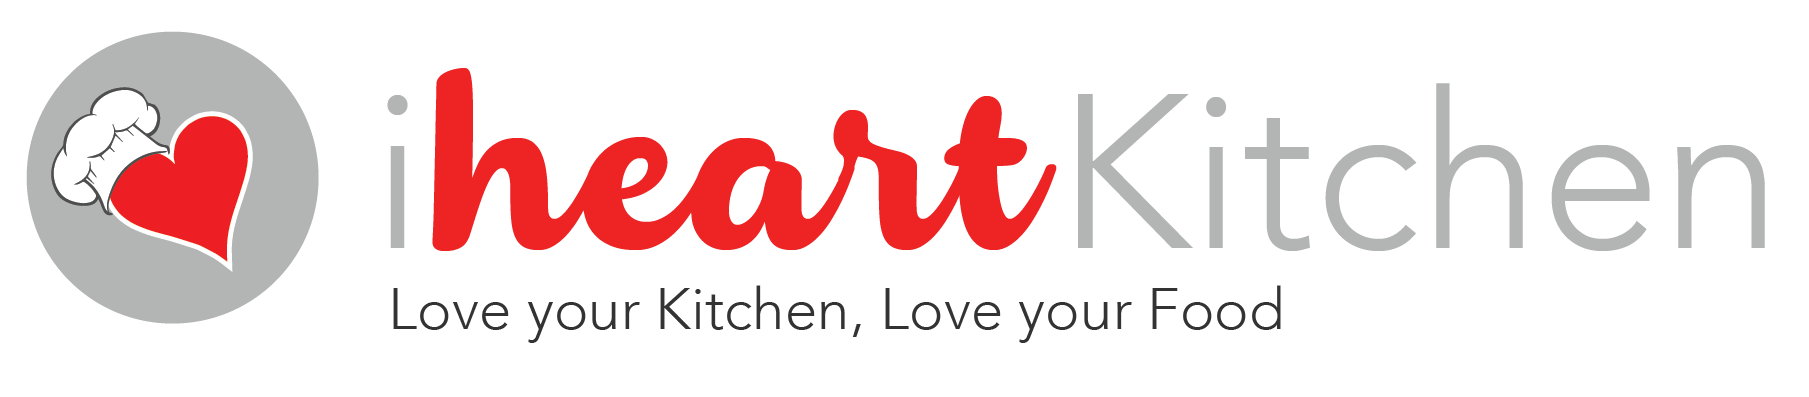 I Heart Kitchen